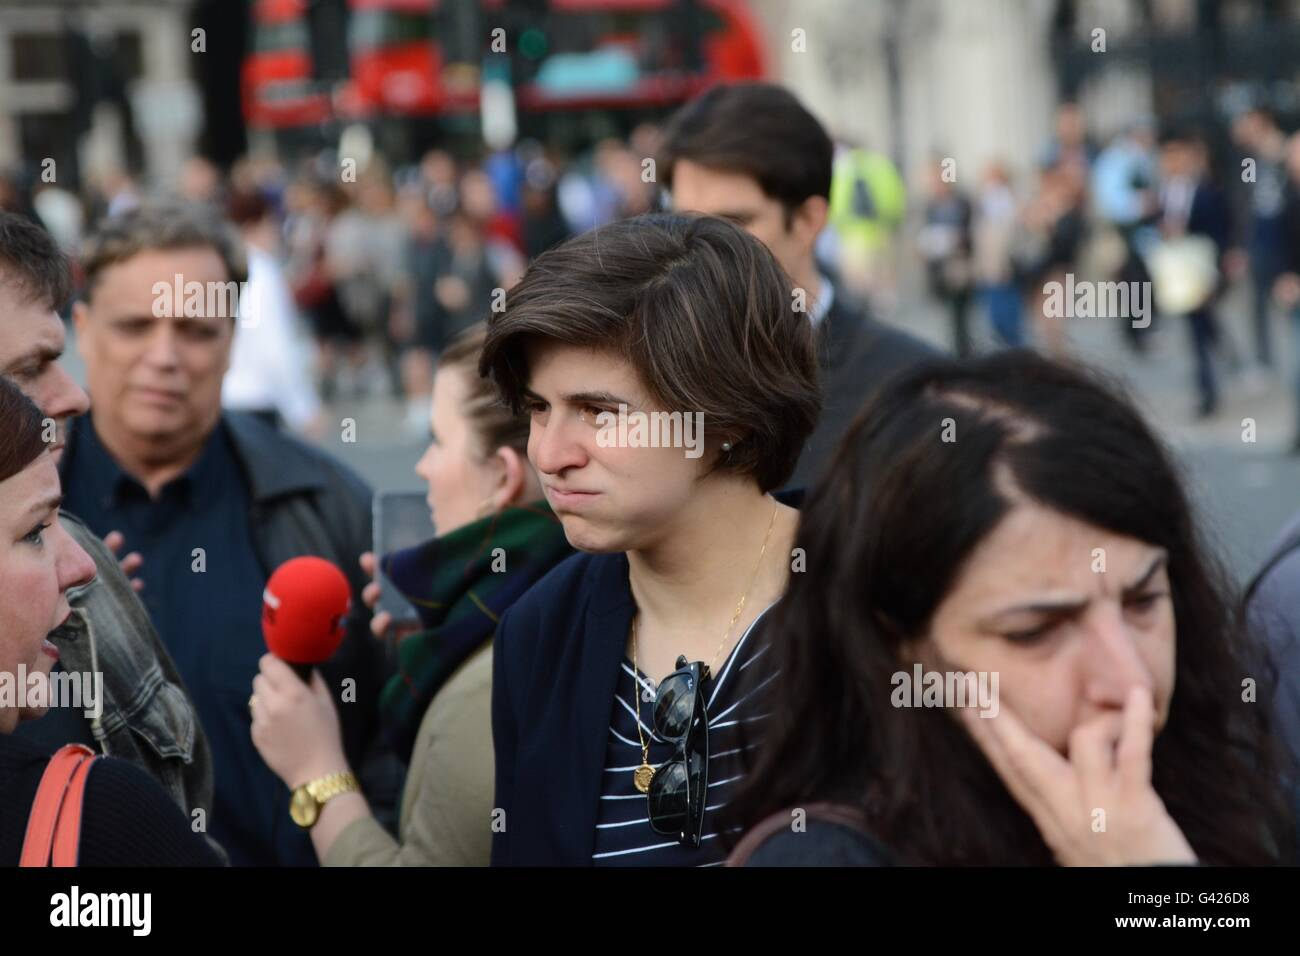 London, England. 17 June 2016. A teary mourner stands in Parliament Square. Credit: Marc Ward/Alamy Live News - Stock Image